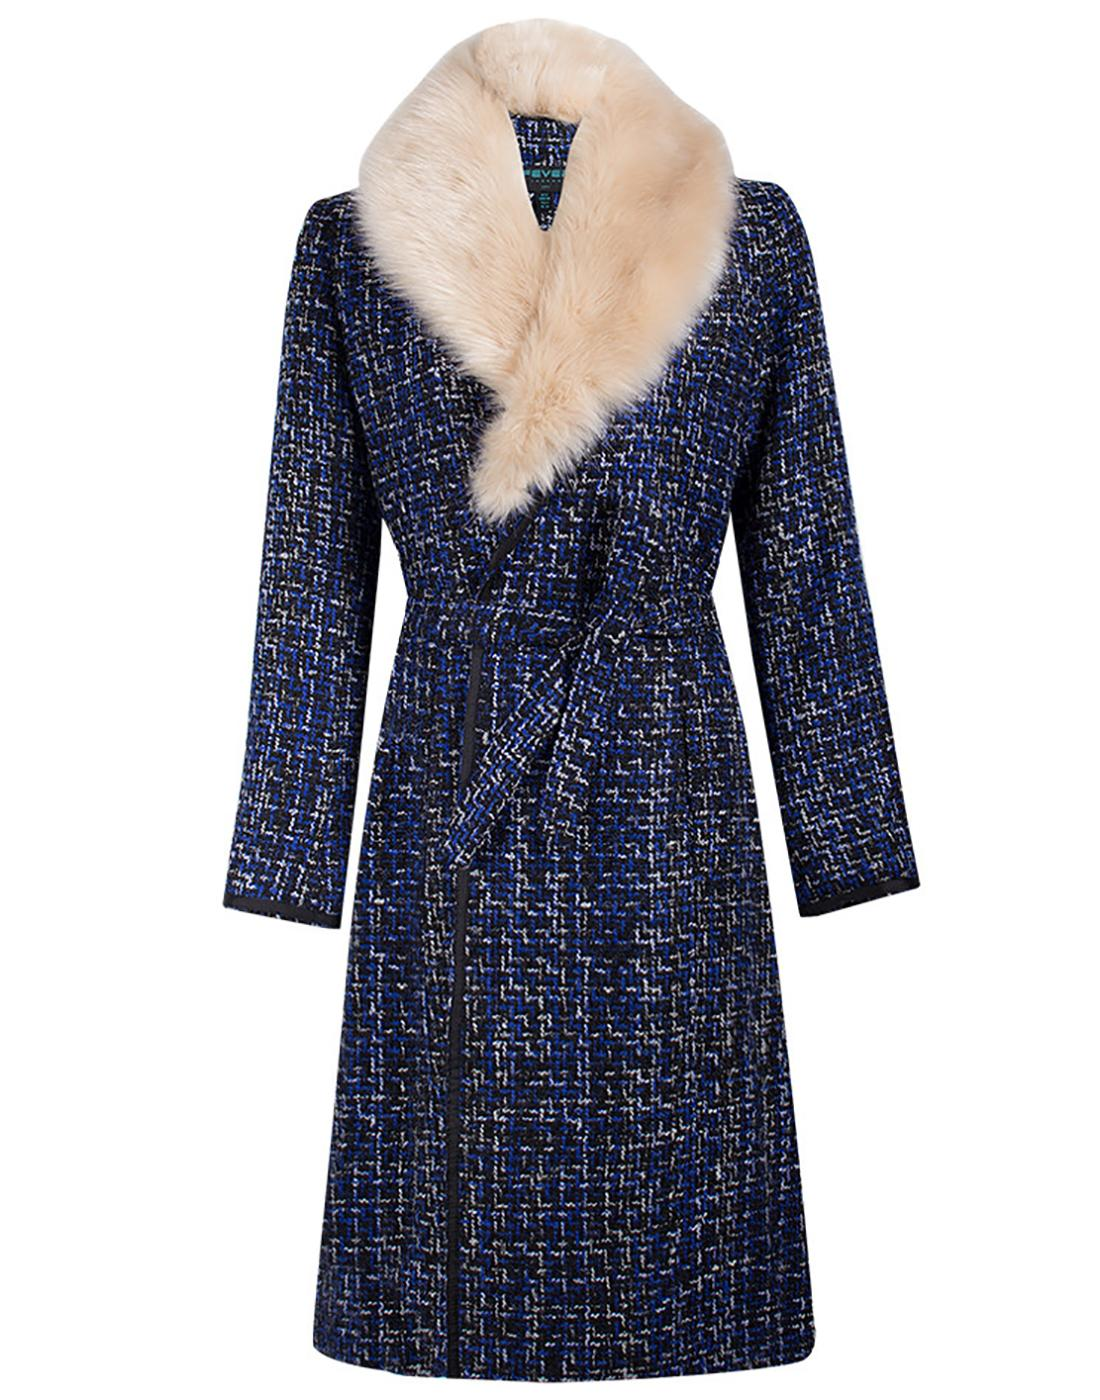 Enid FEVER Retro 70s Vintage Faux Fur Collar Coat